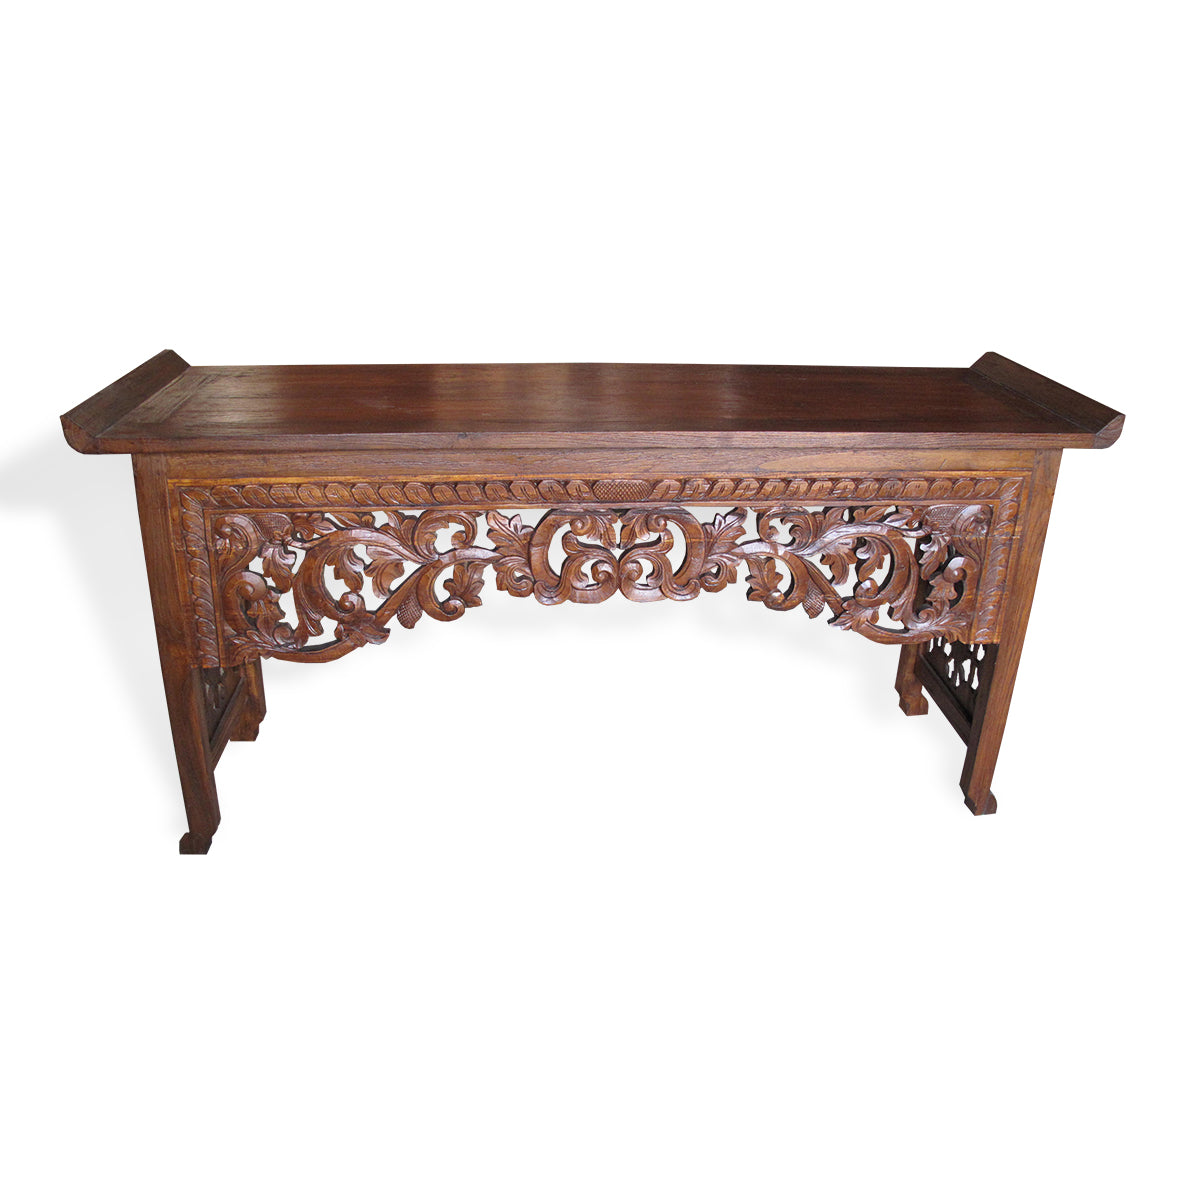 LAC046-1 CARVED RECYCLED TEAK CONSOLE